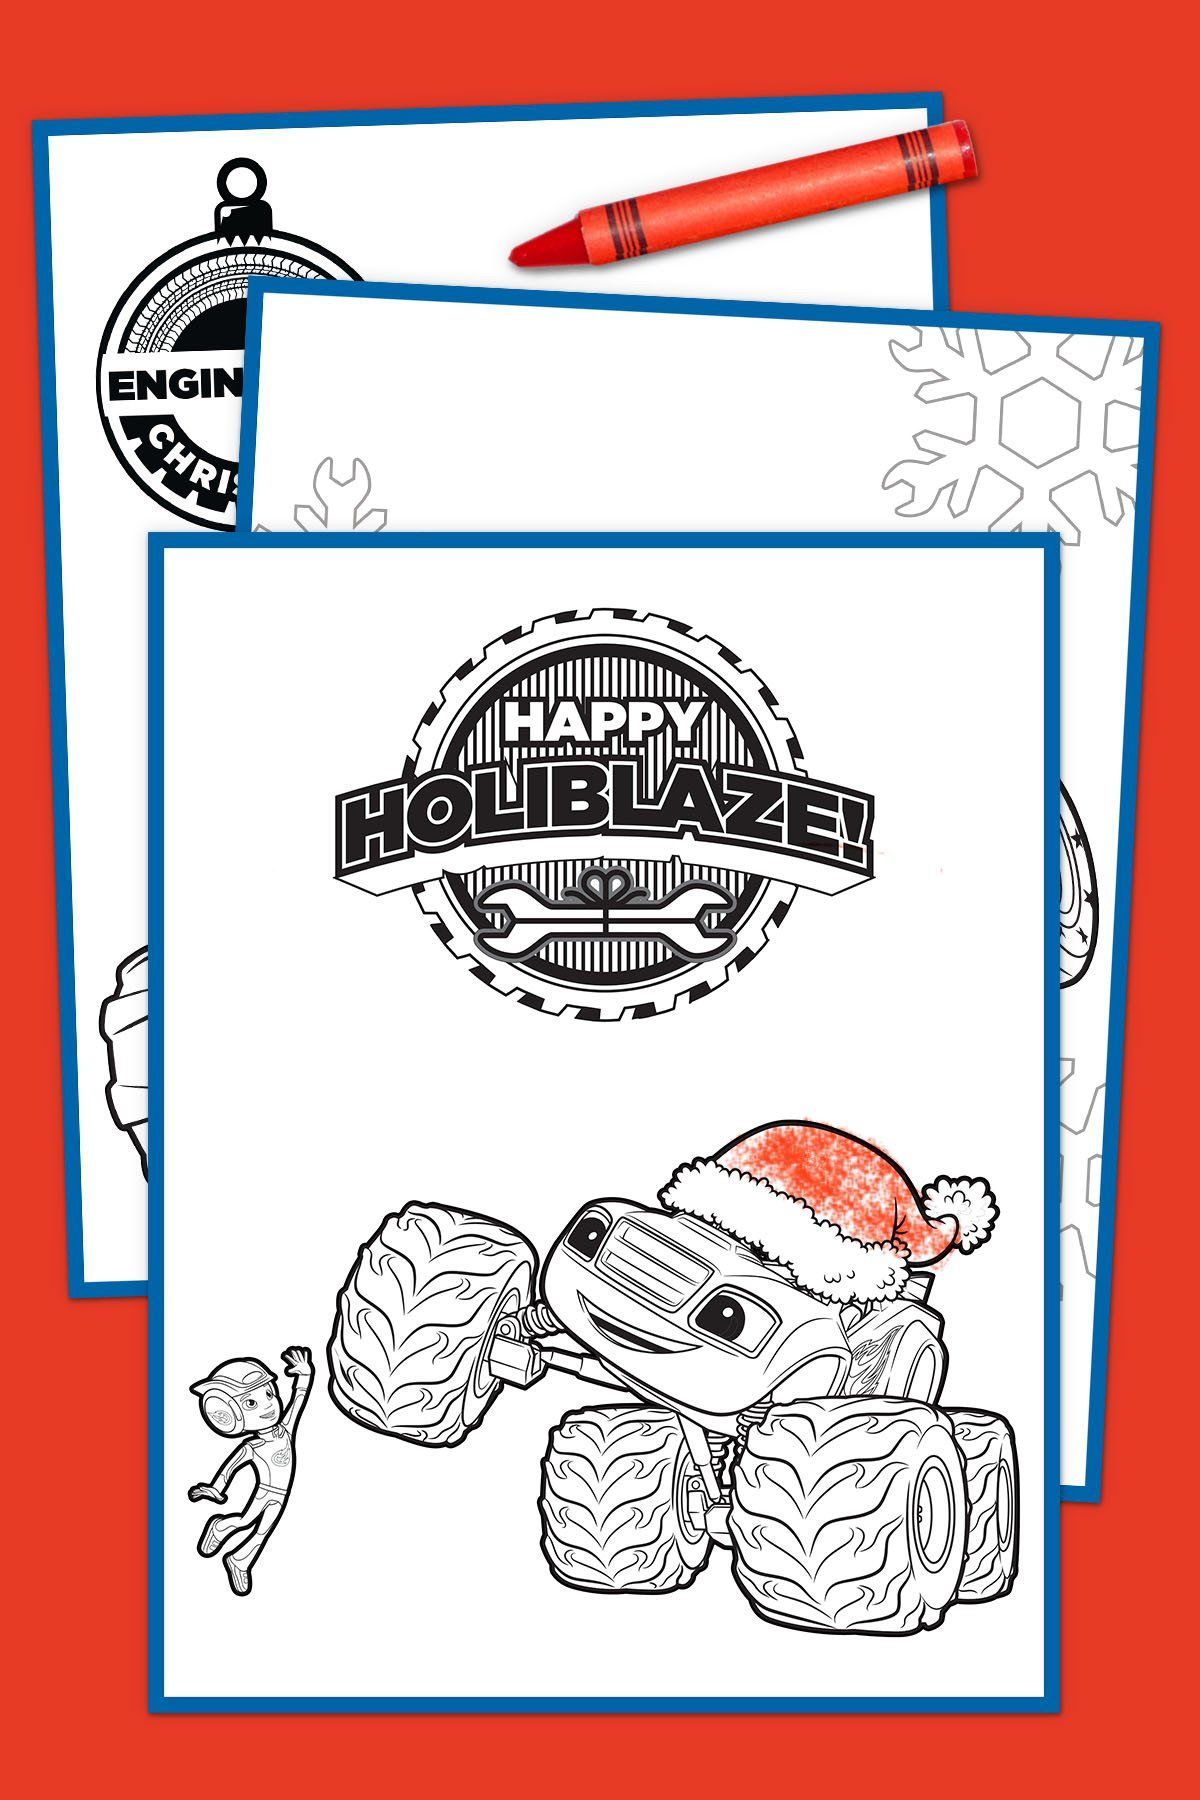 Blaze And The Monster Machines Coloring Blaze And The Monster Machines Holiday Coloring Pa Coloring Pages Mickey Mouse Coloring Pages Paw Patrol Coloring Pages [ 1800 x 1200 Pixel ]